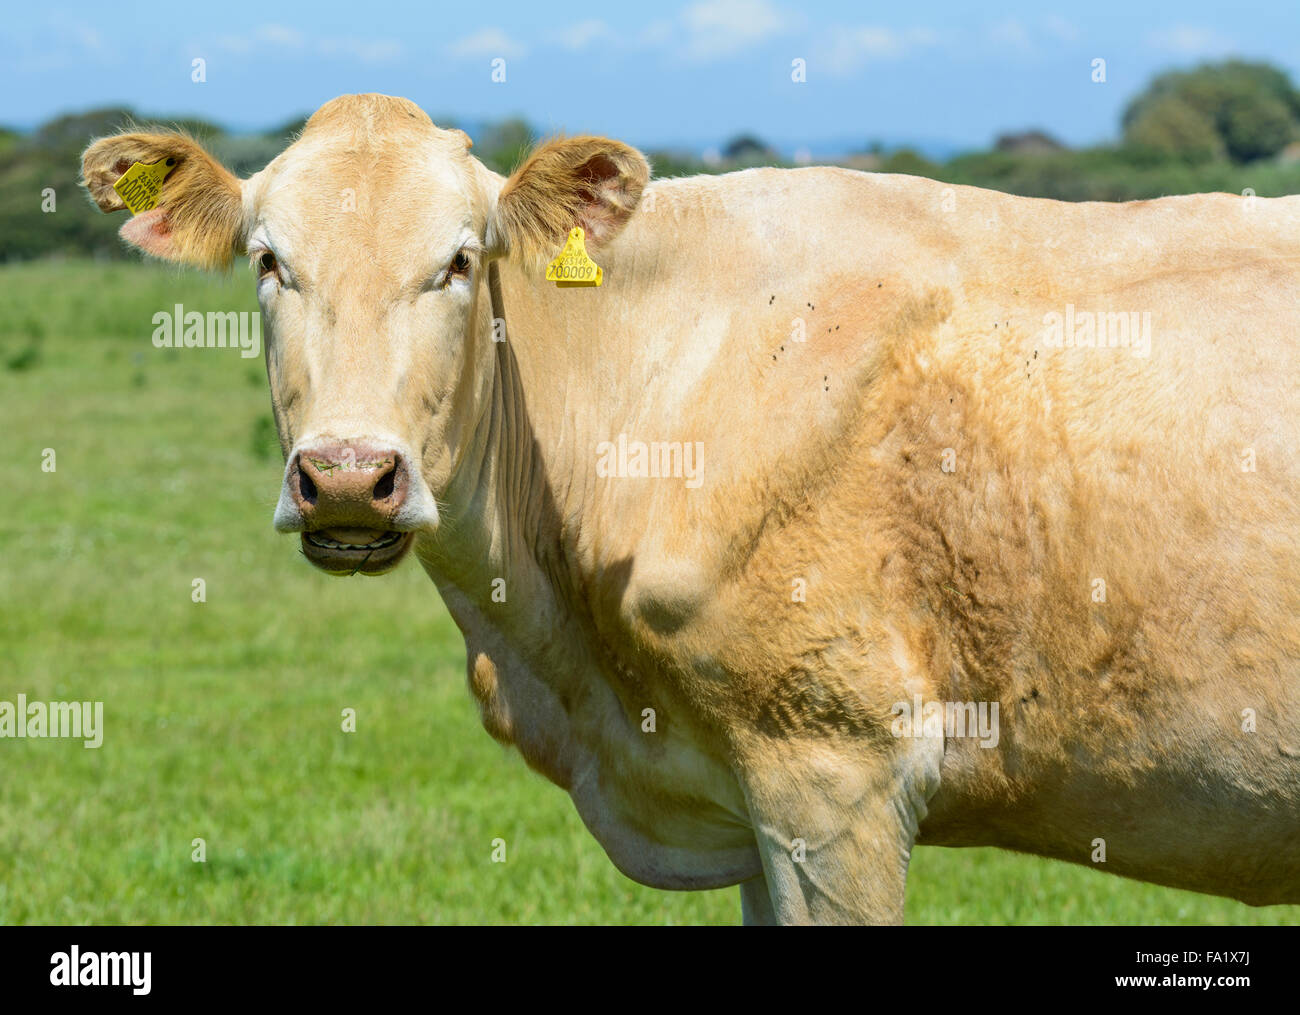 brown-cow-in-a-field-looking-at-the-came